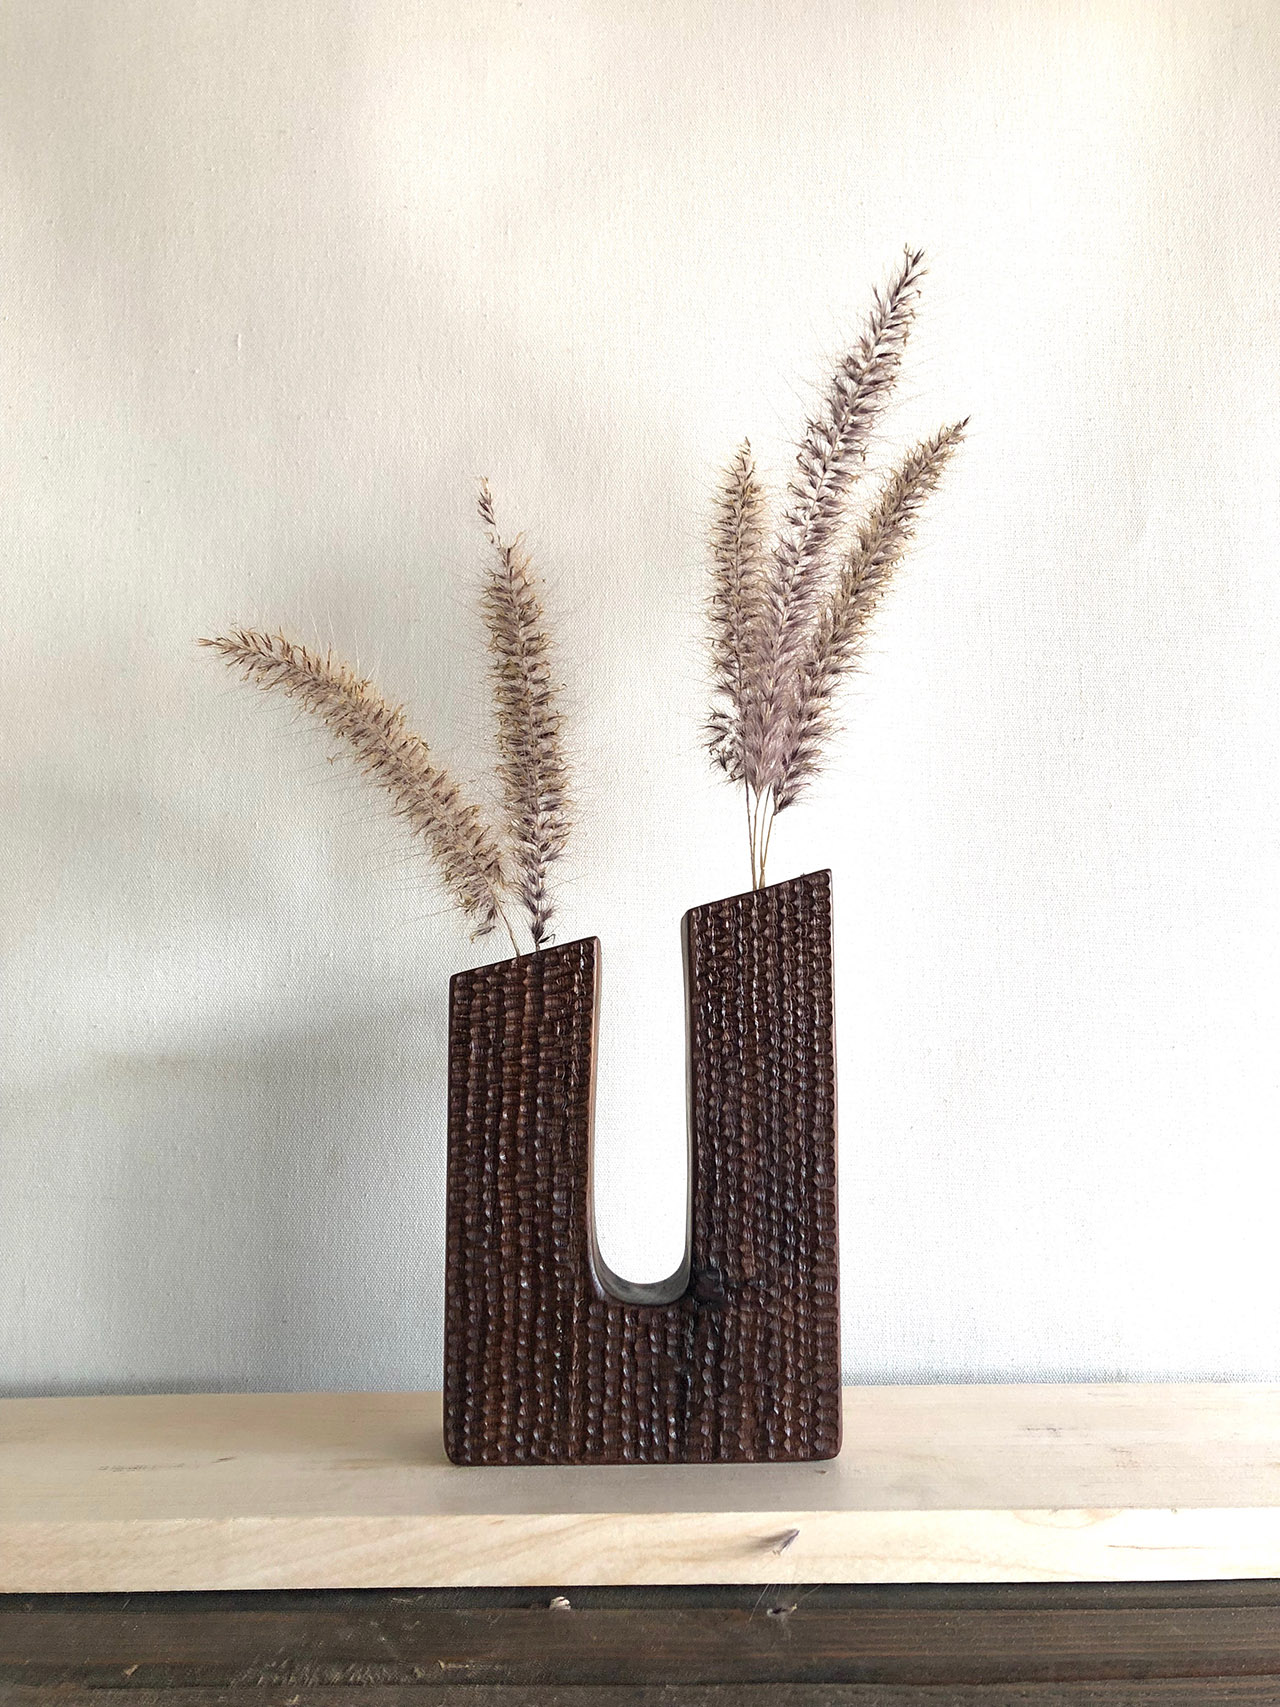 Wooden flower vase from Unlikely Objects